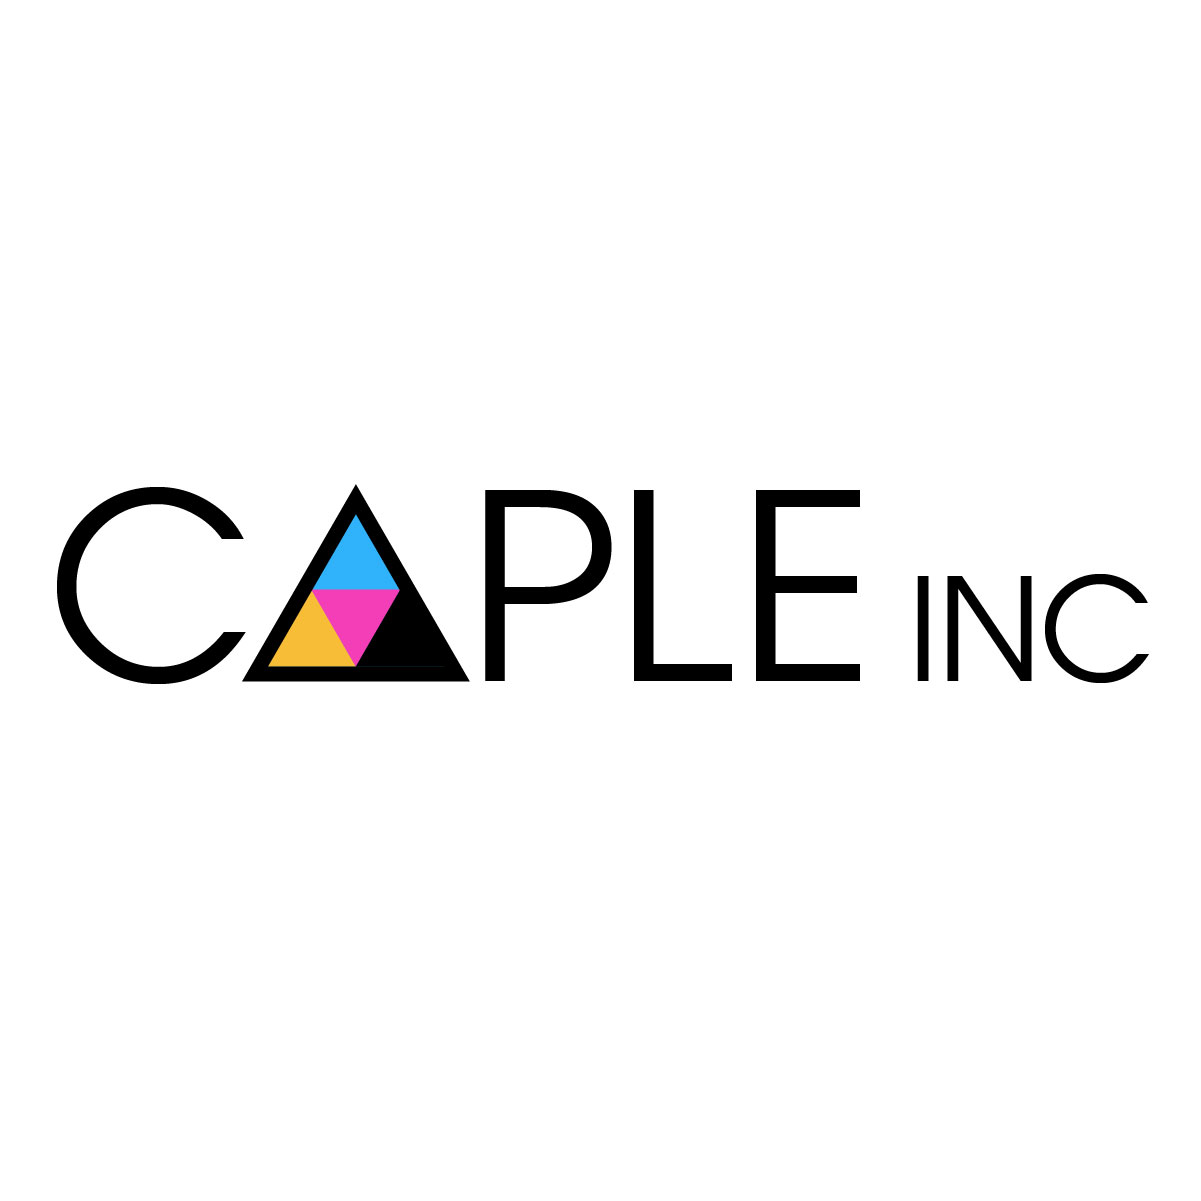 caple digital printing Peter is Offering 15% off of any printing job for c3 members. And to add on to this wonderful gesture, he's located right here at c3!